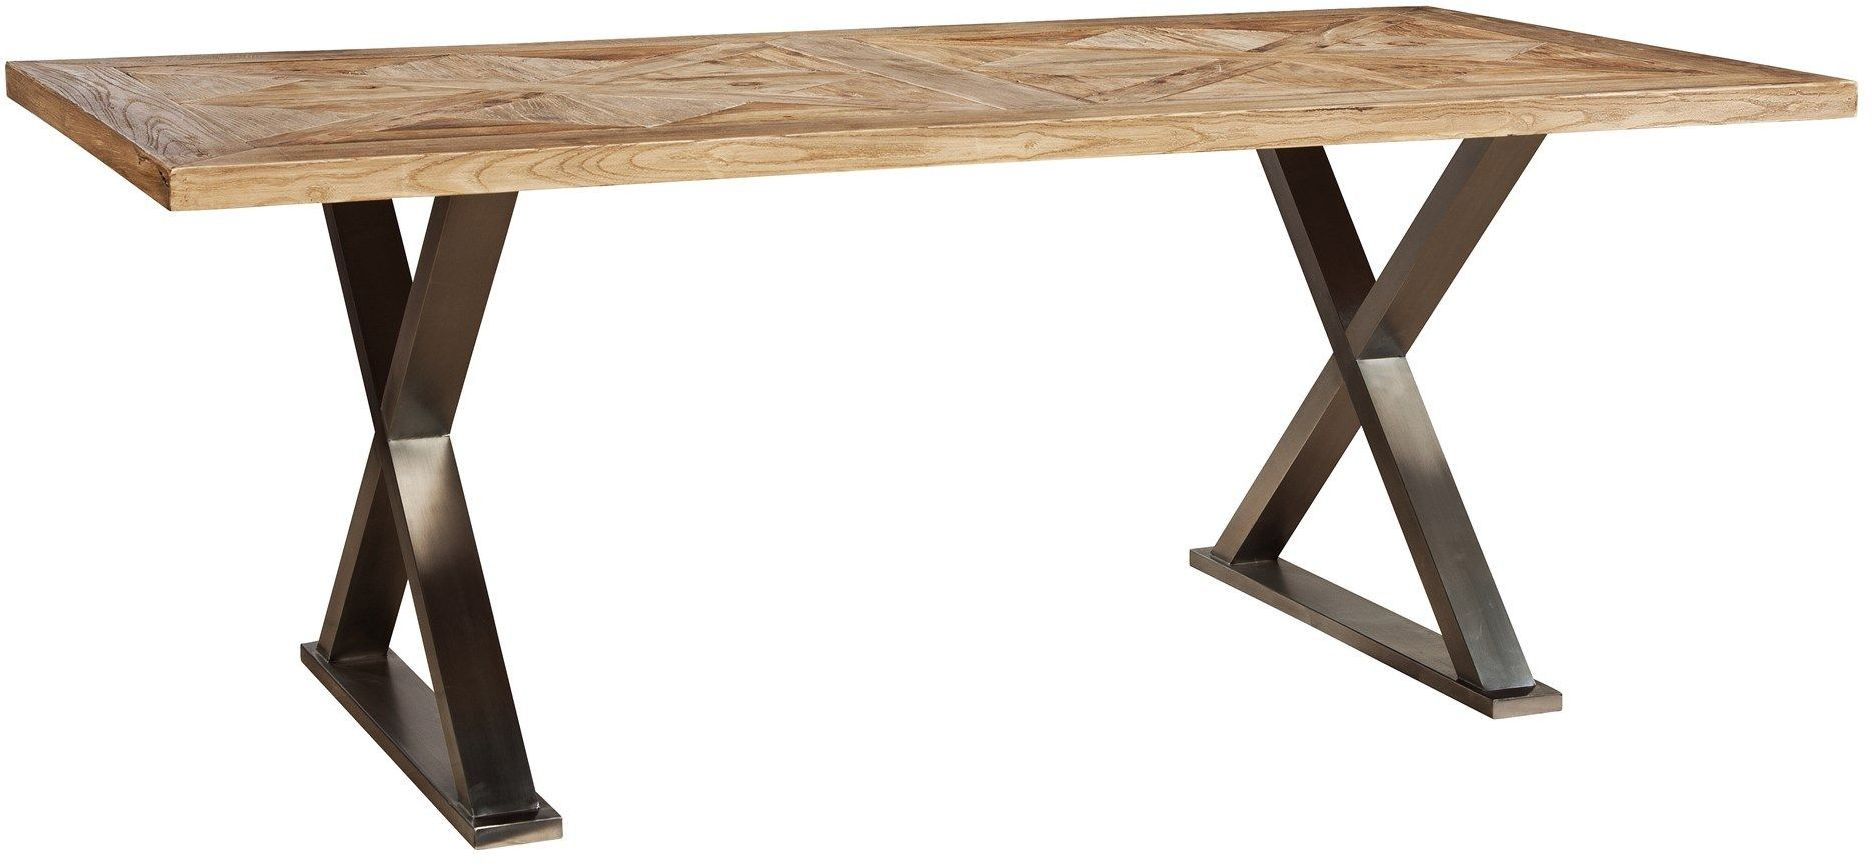 Brown cross leg rectangular dining table rdh40 furniture classics - Crossed leg dining table ...